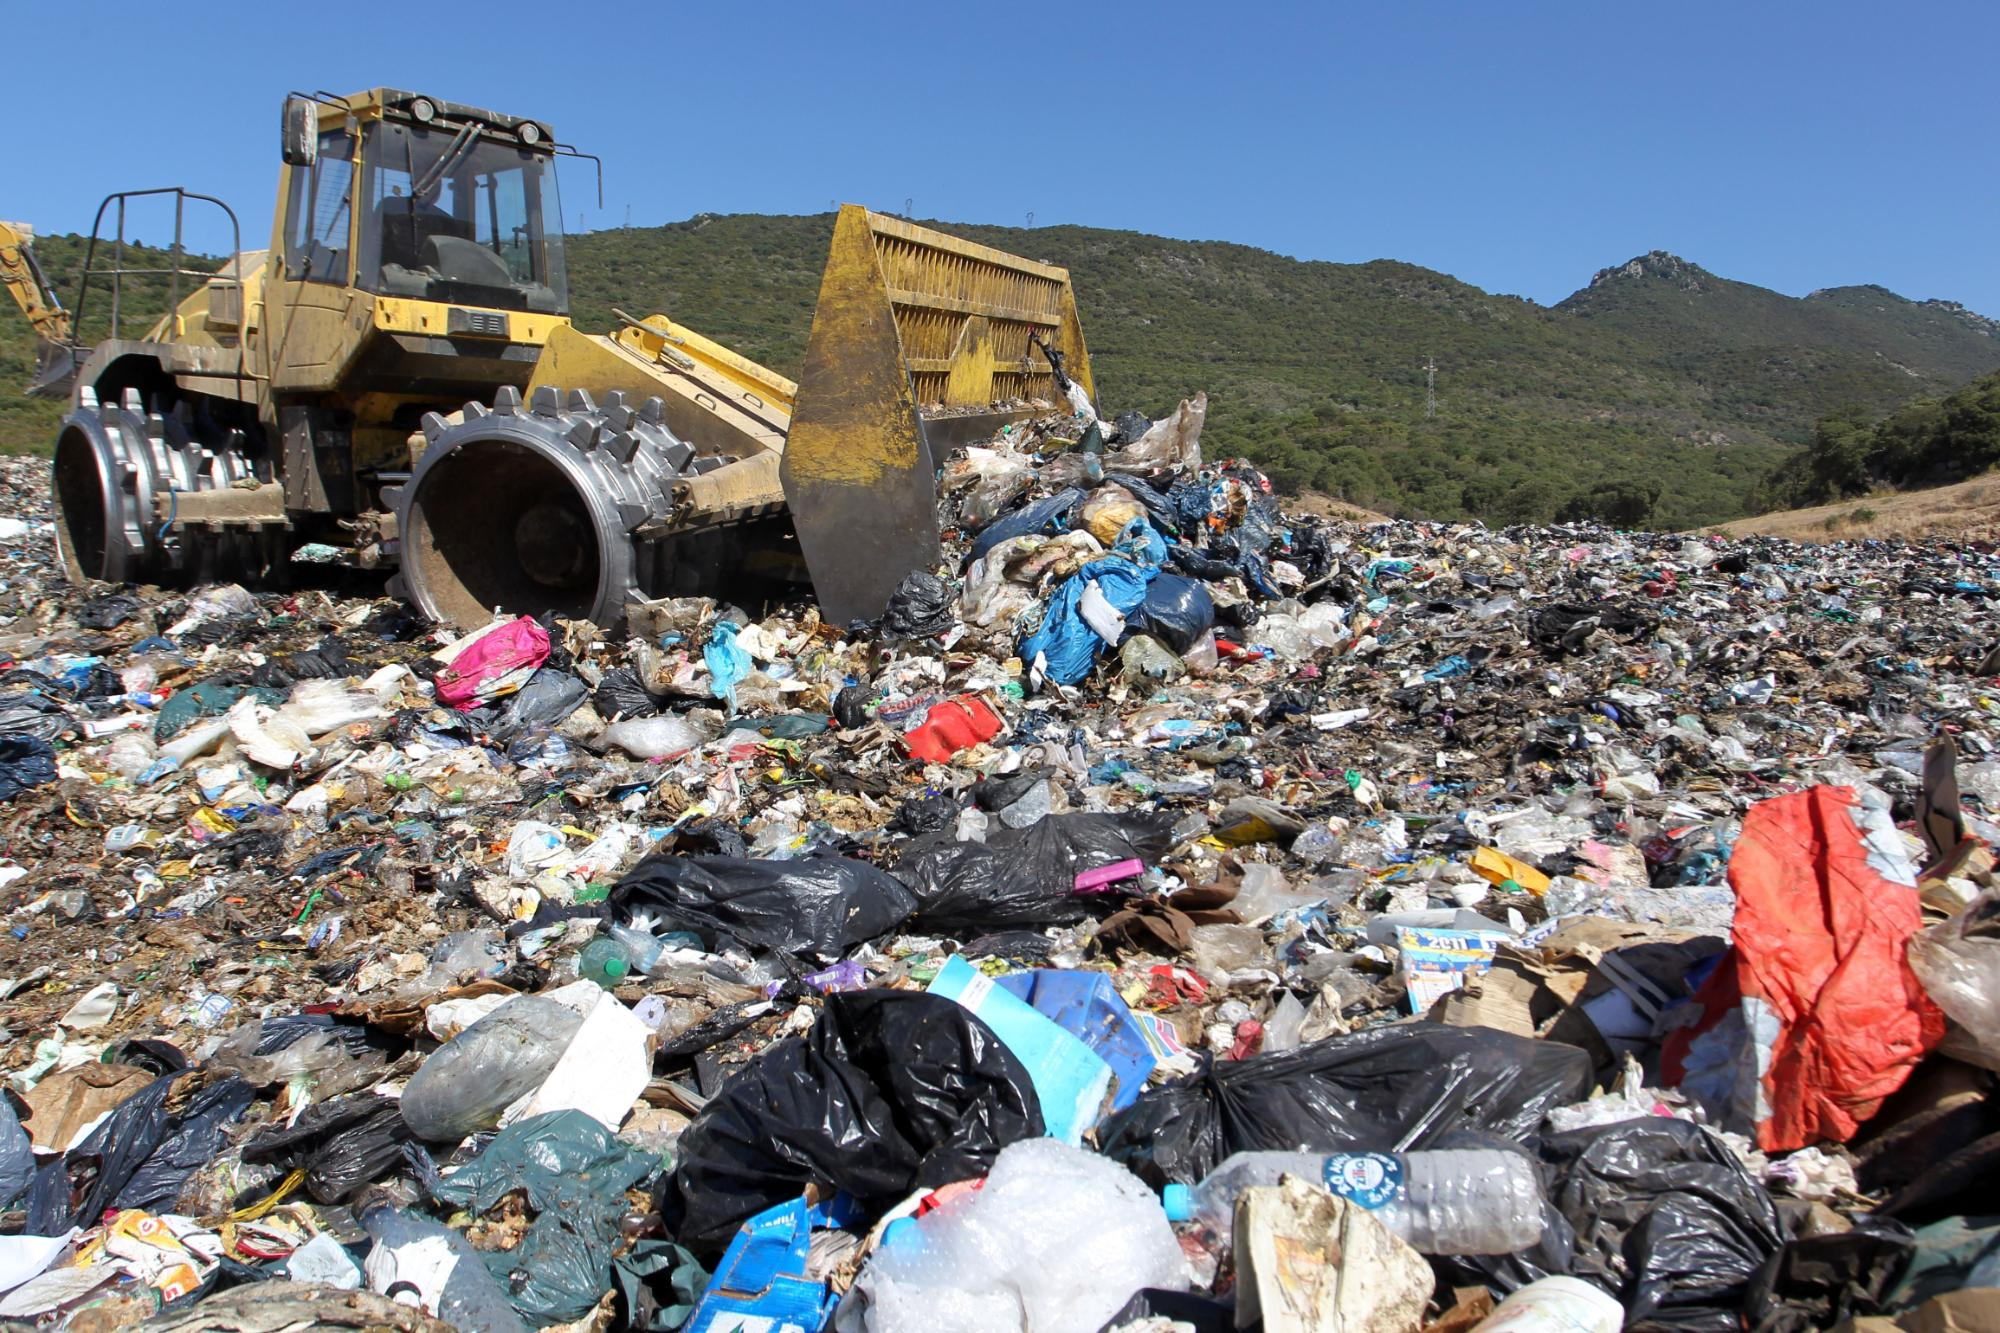 An Accidental Discovery Could Solve Earth's Plastic Waste Problem